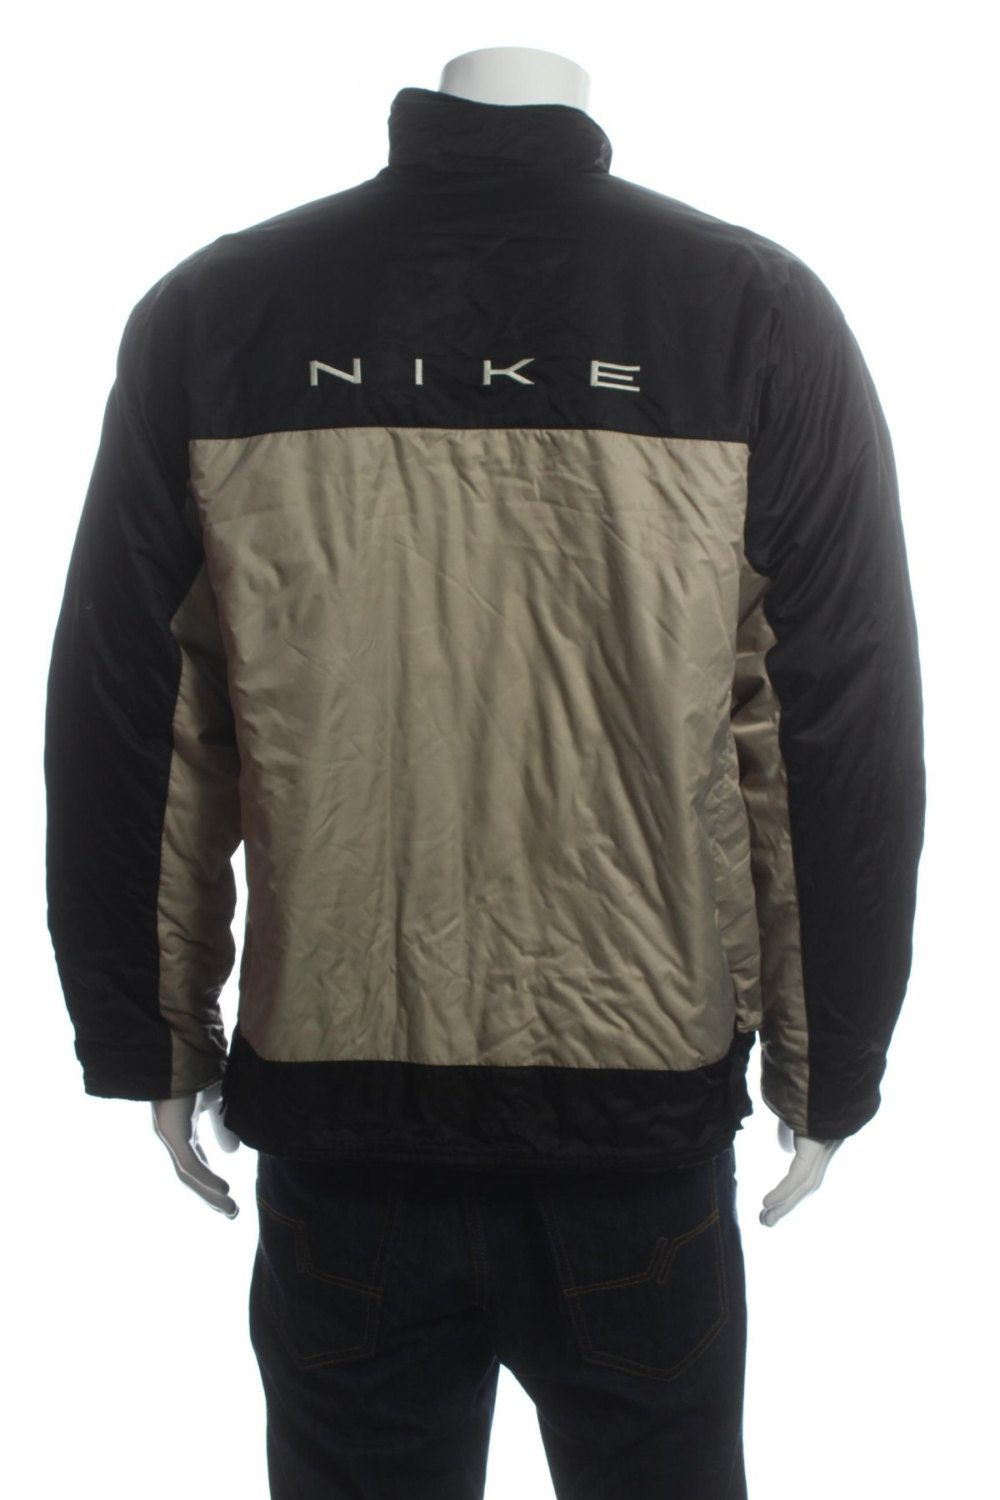 Vintage 90s Nike Swoosh Quilted Jacket Big Logo Spell Out Color Block  Black Beige Size L by VapeoVintage on Etsy 1726264b9